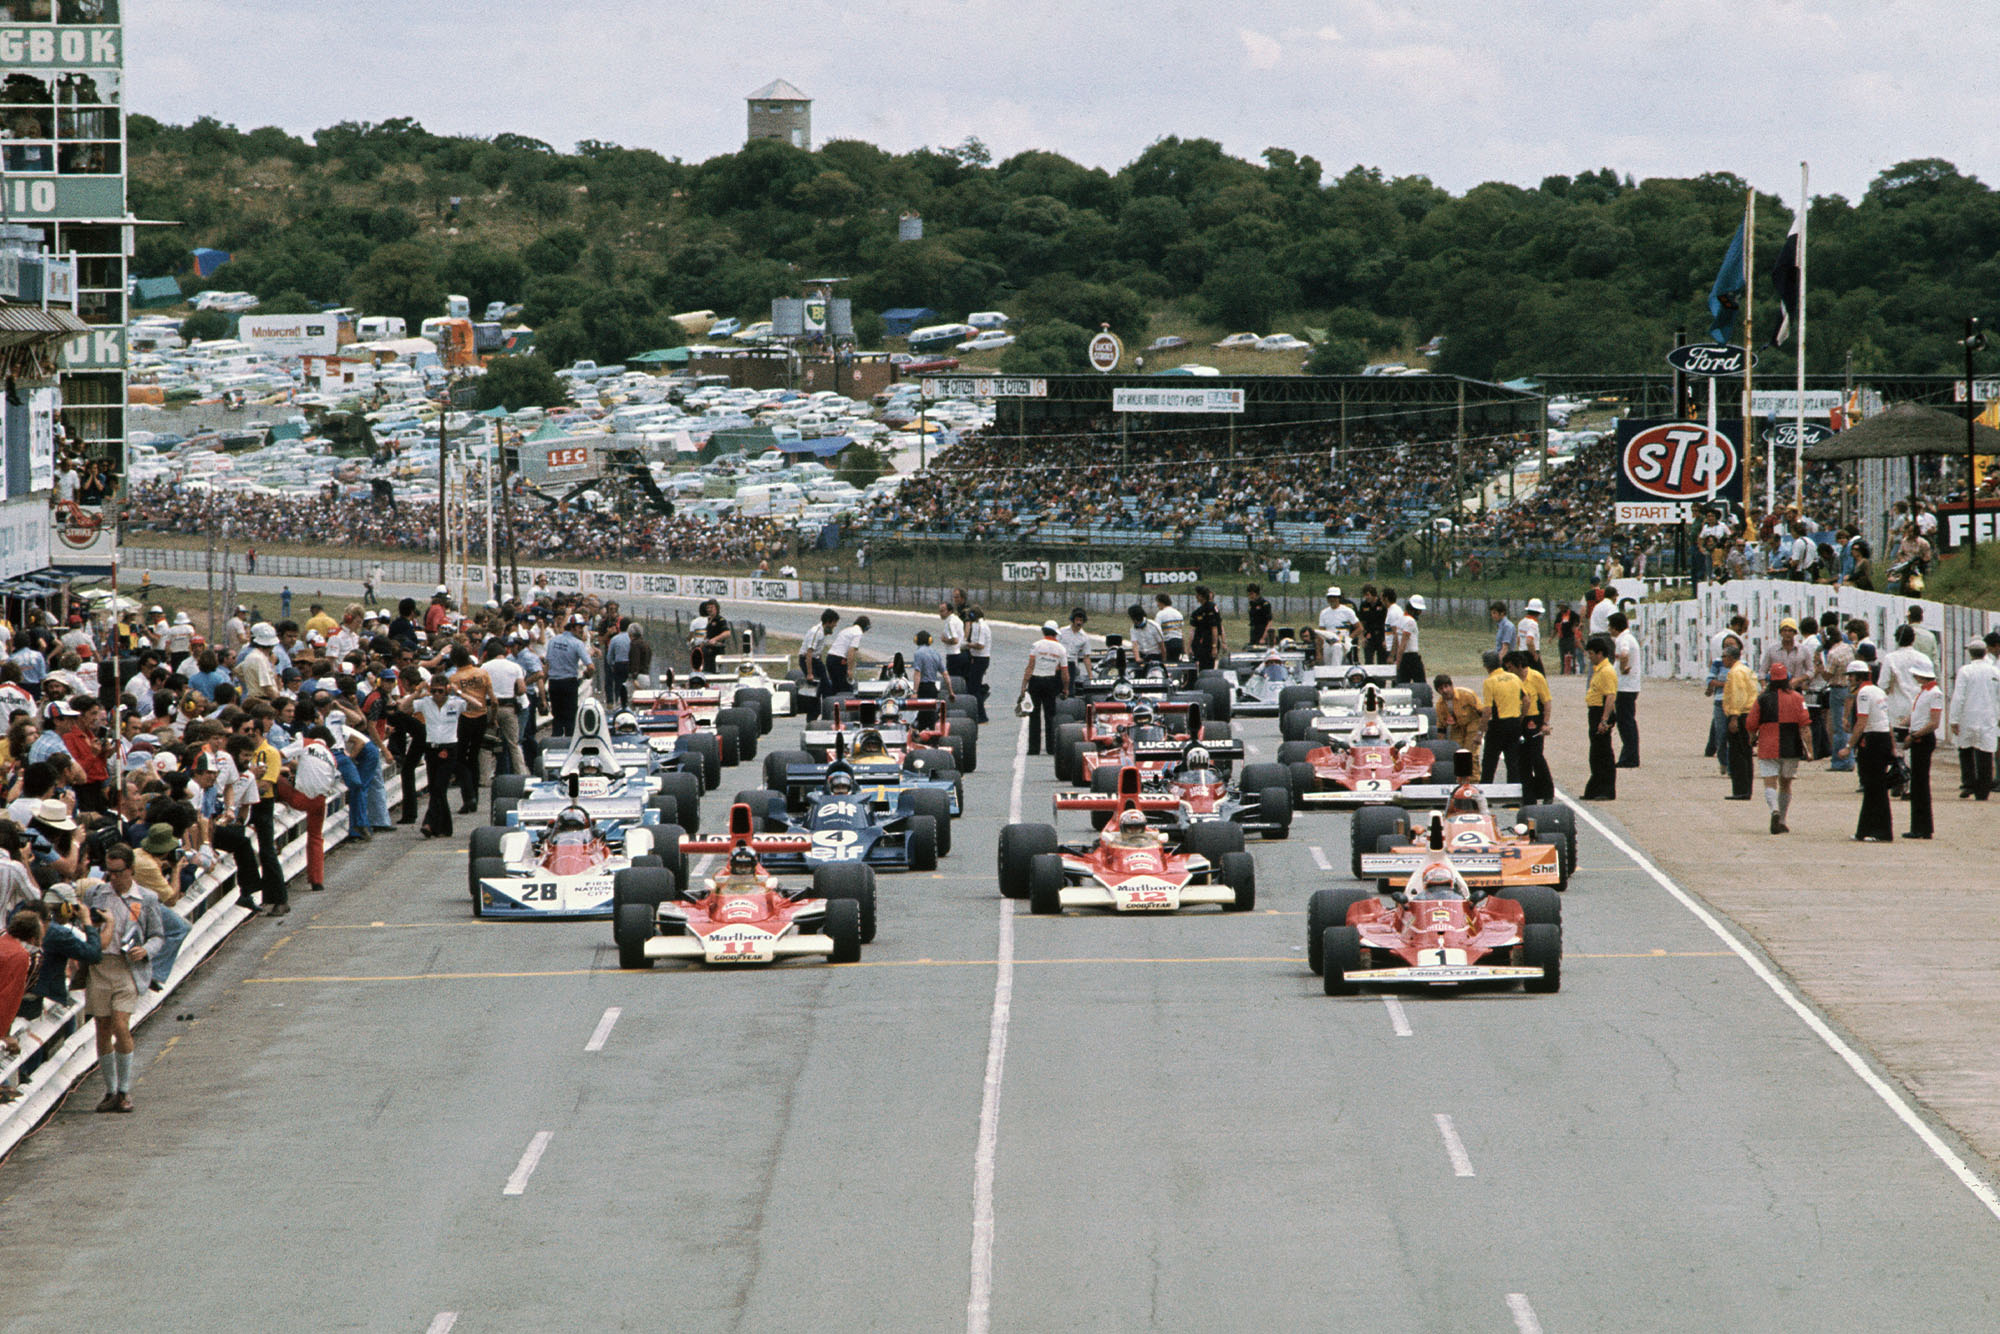 The 1976 South African Grand Prix gets underway